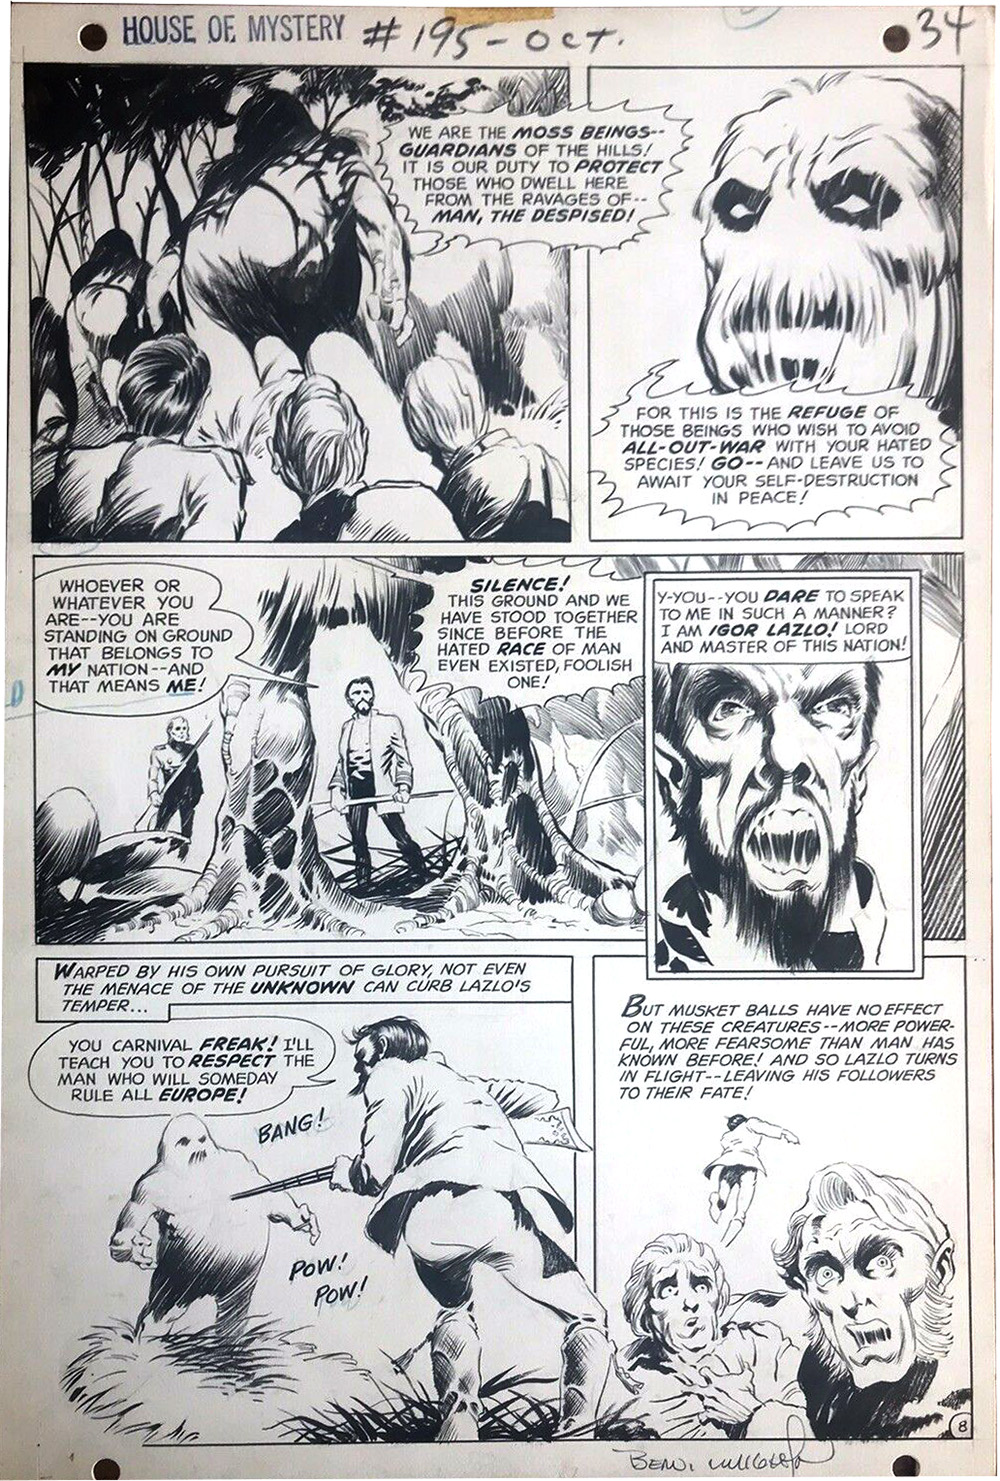 bernie-wrightson-original-comic-art